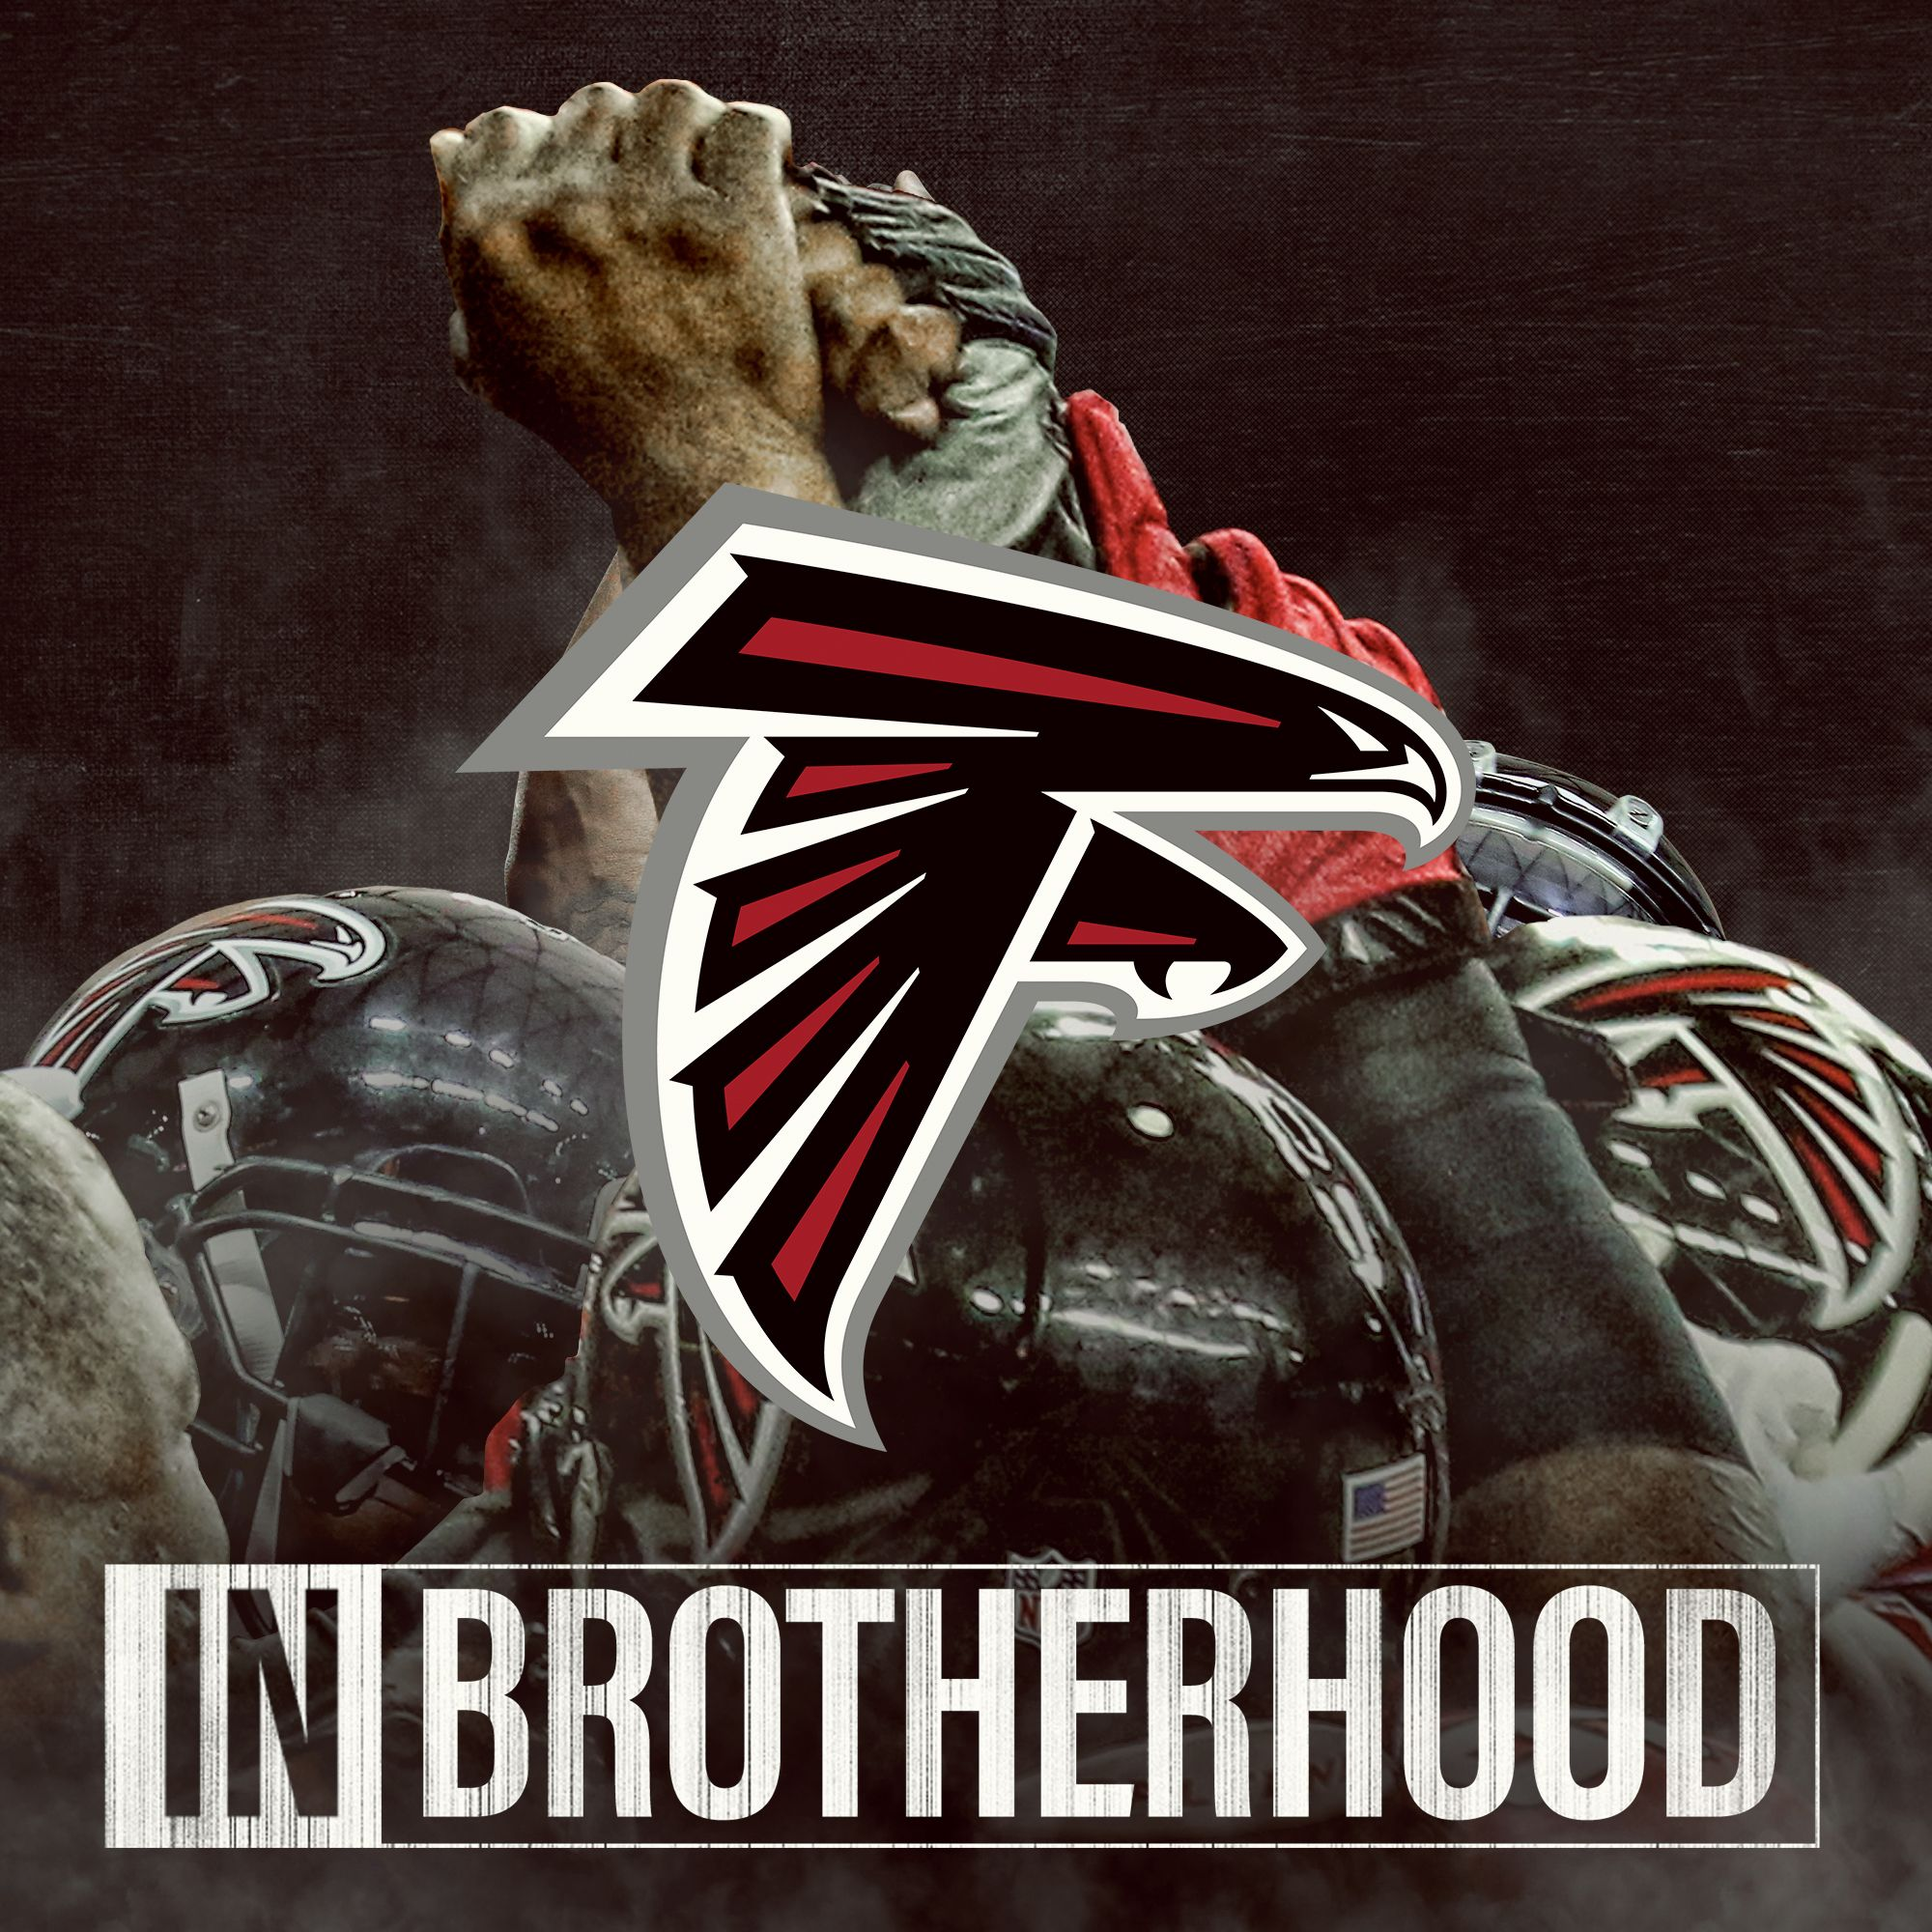 I M All In With My Atlanta Falcons All The Way To The Sb Believe In The Brotherhood Atlanta Falcons Football Atlanta Falcons Art Atlanta Falcons